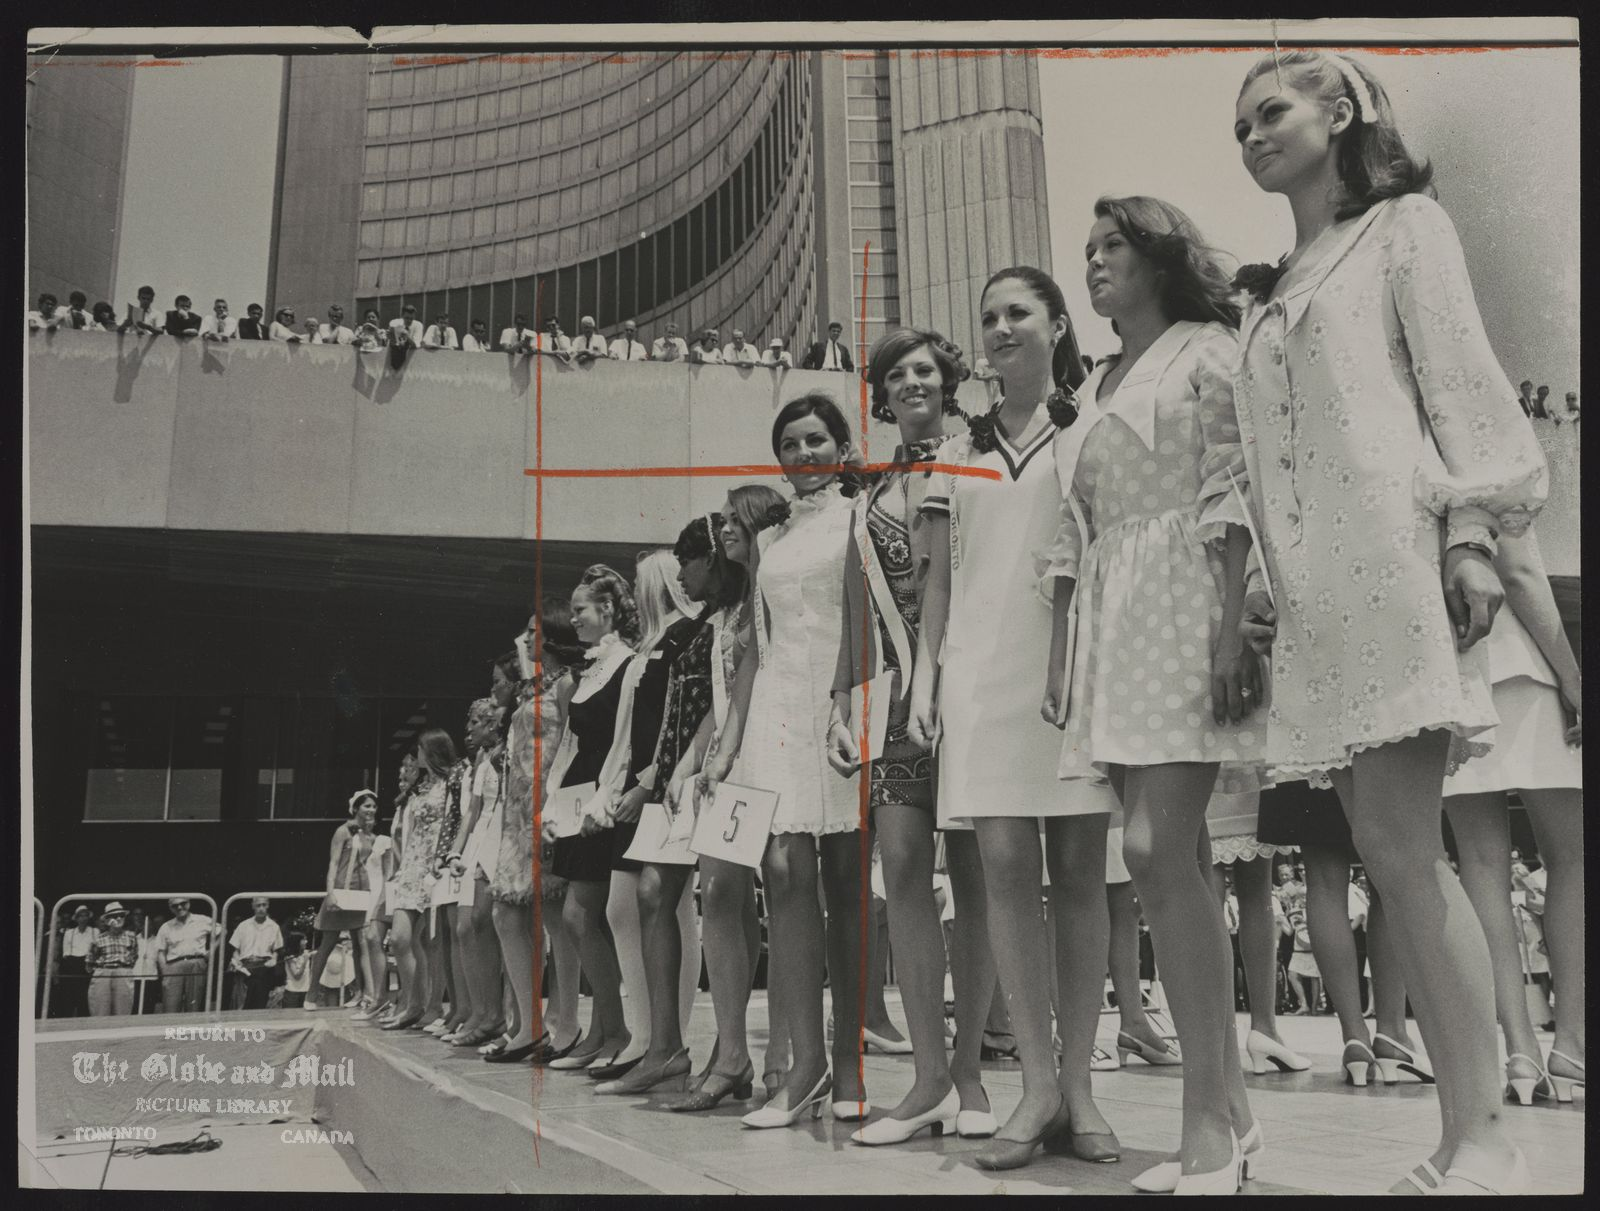 BEAUTY CONTEST Miss Toronto. F inalists in the Miss Toronto 1968 beauty contest, sponsored by Metro Toronto police, line up in front of City Hall yesterday to provide a noon-time bonus for girl-watchers. The contestants were welcomed by Mayor William Dennison and Miss Toronto 1967 Shirley Ann Macdonald.